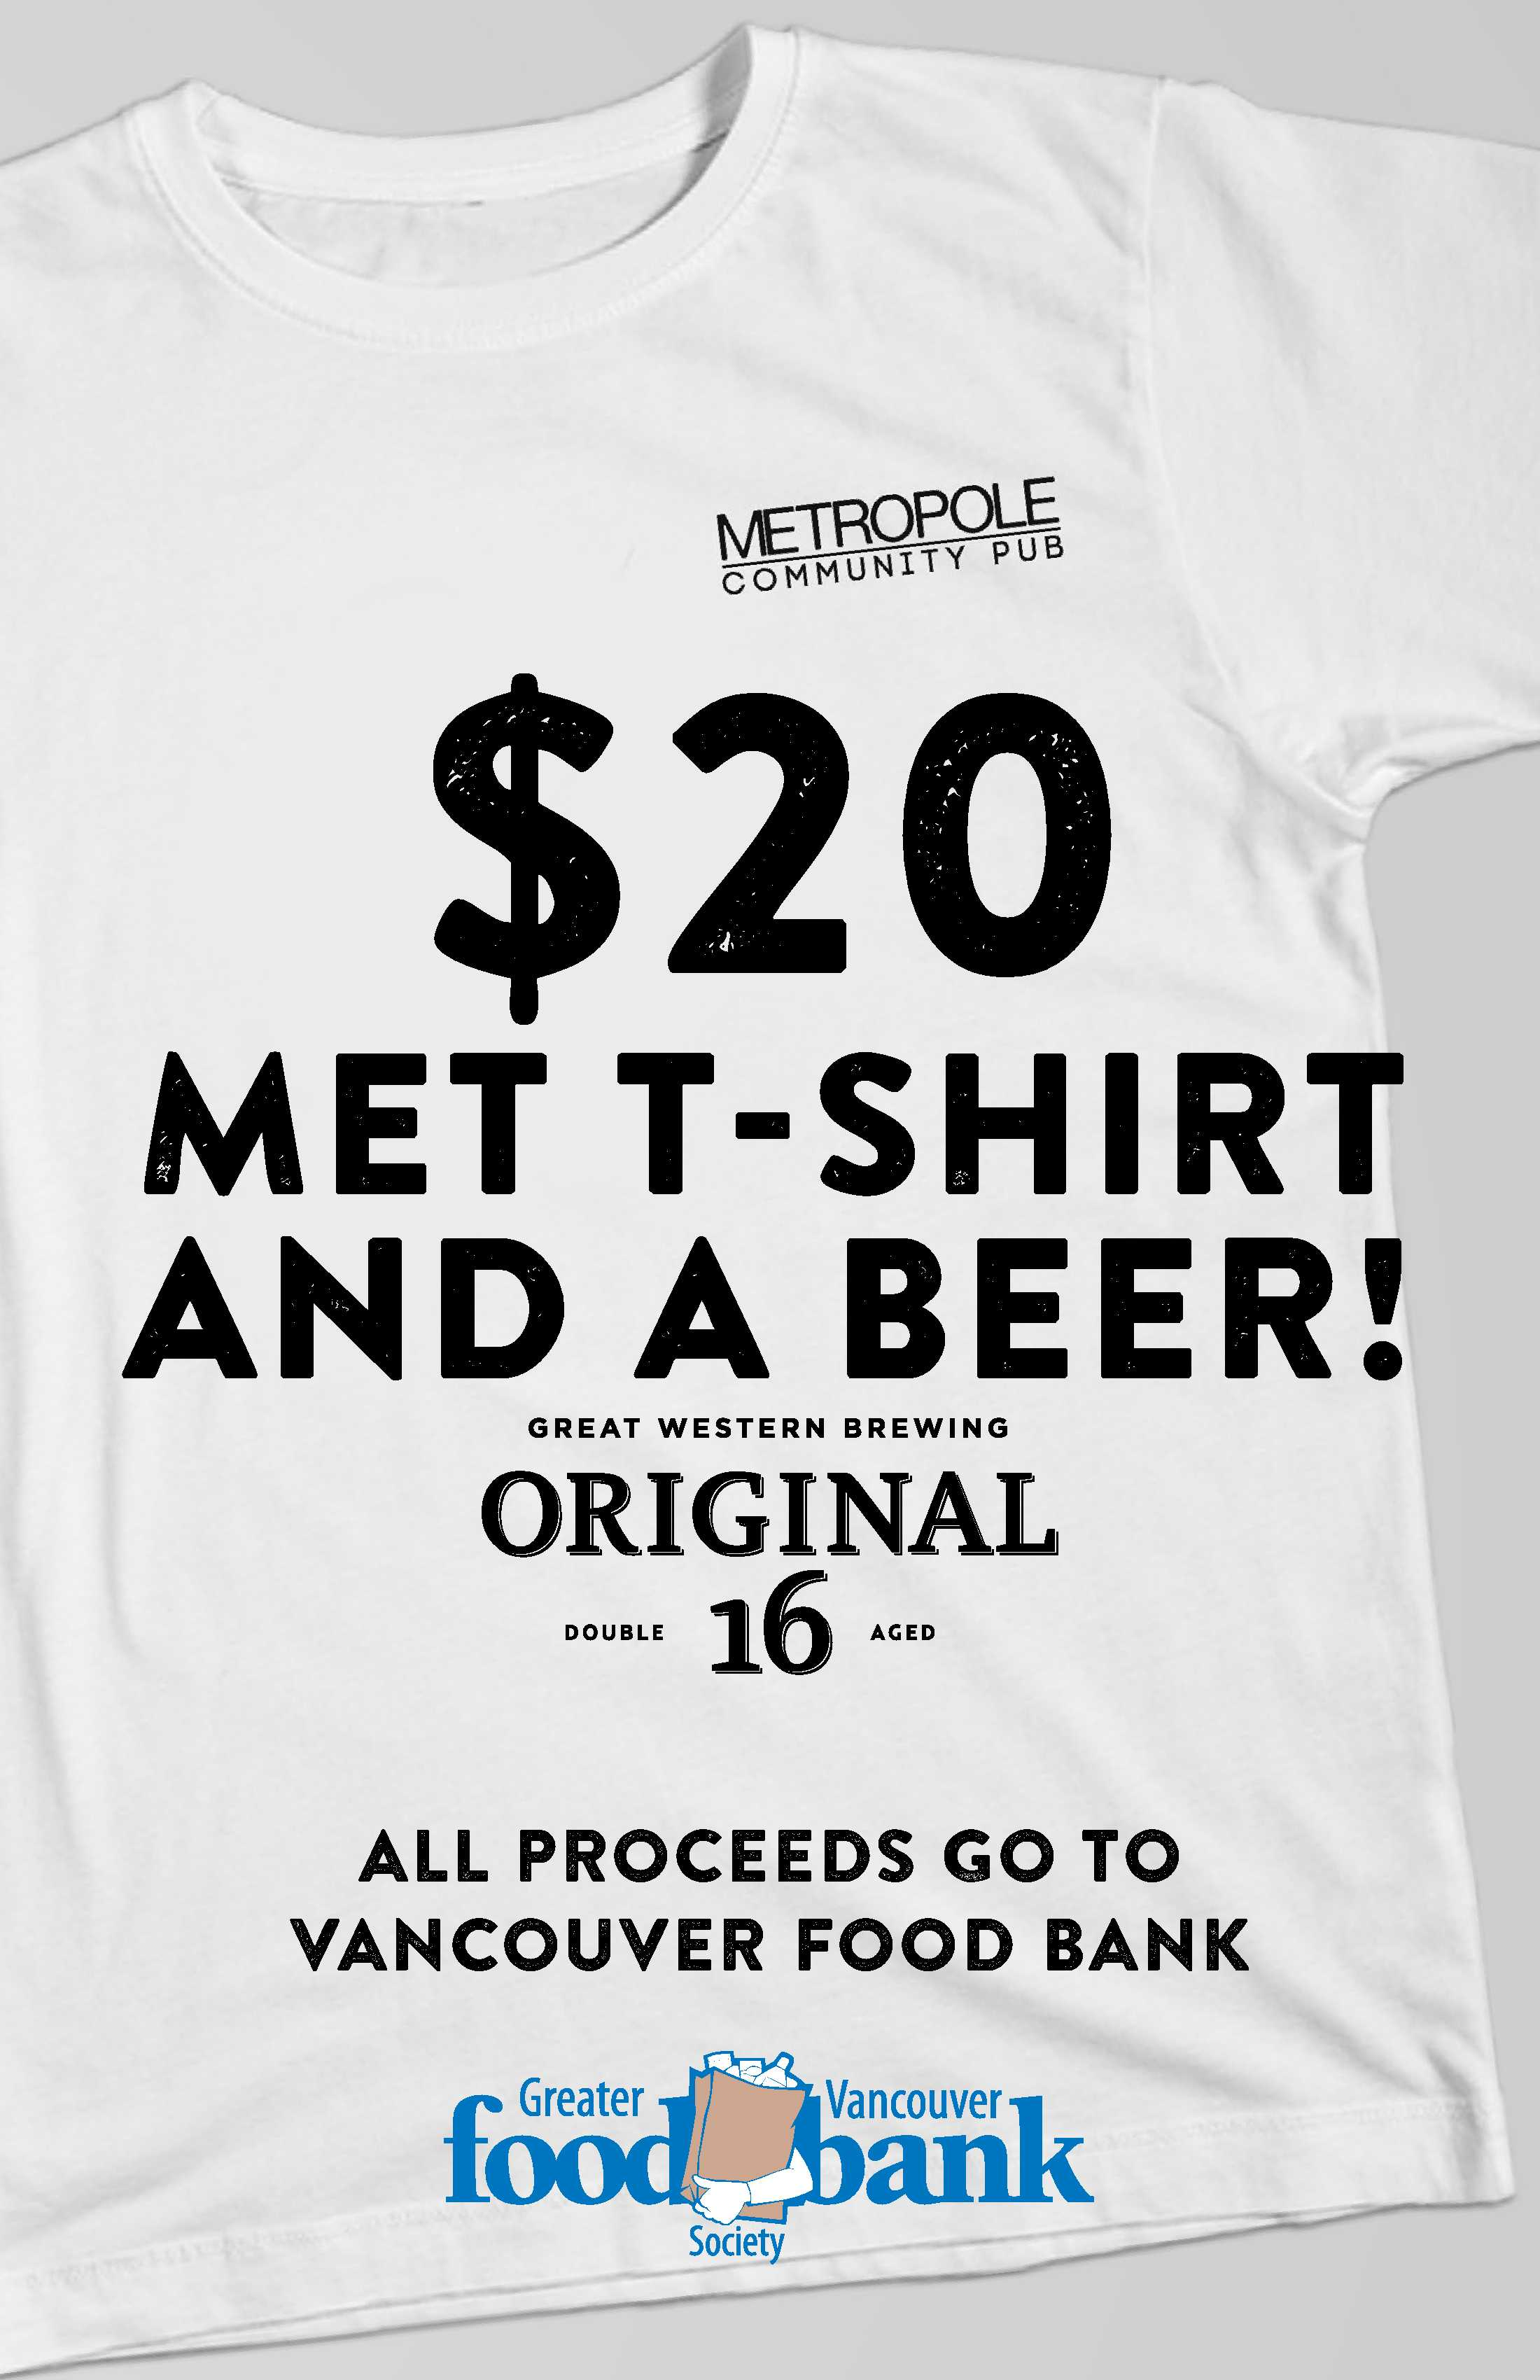 Food Bank Donation Of 20 Will Get You A Beer Amp A Shirt